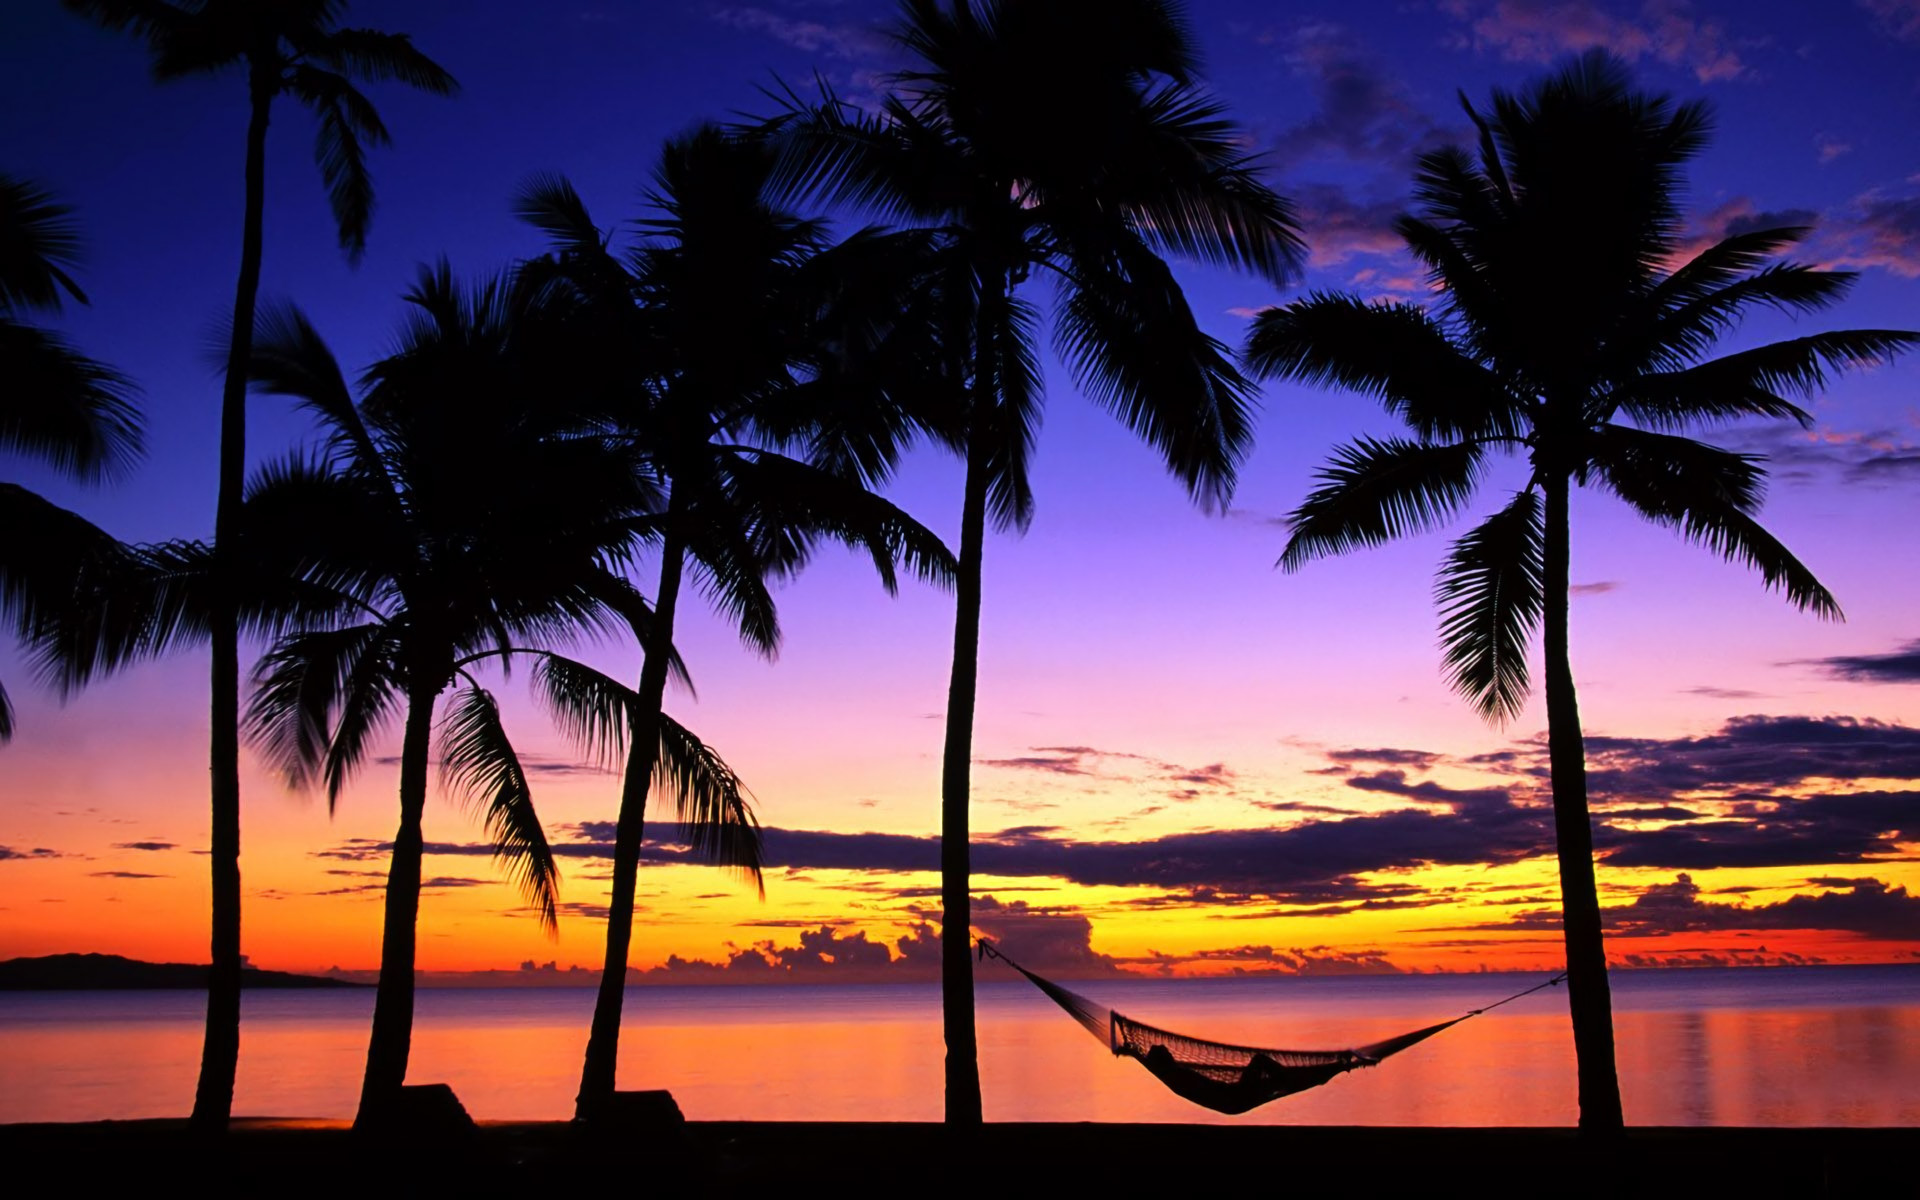 10 Best Tropical Beach Desktop Backgrounds Full Hd 1920: Tropical Wallpaper Desktop ·①